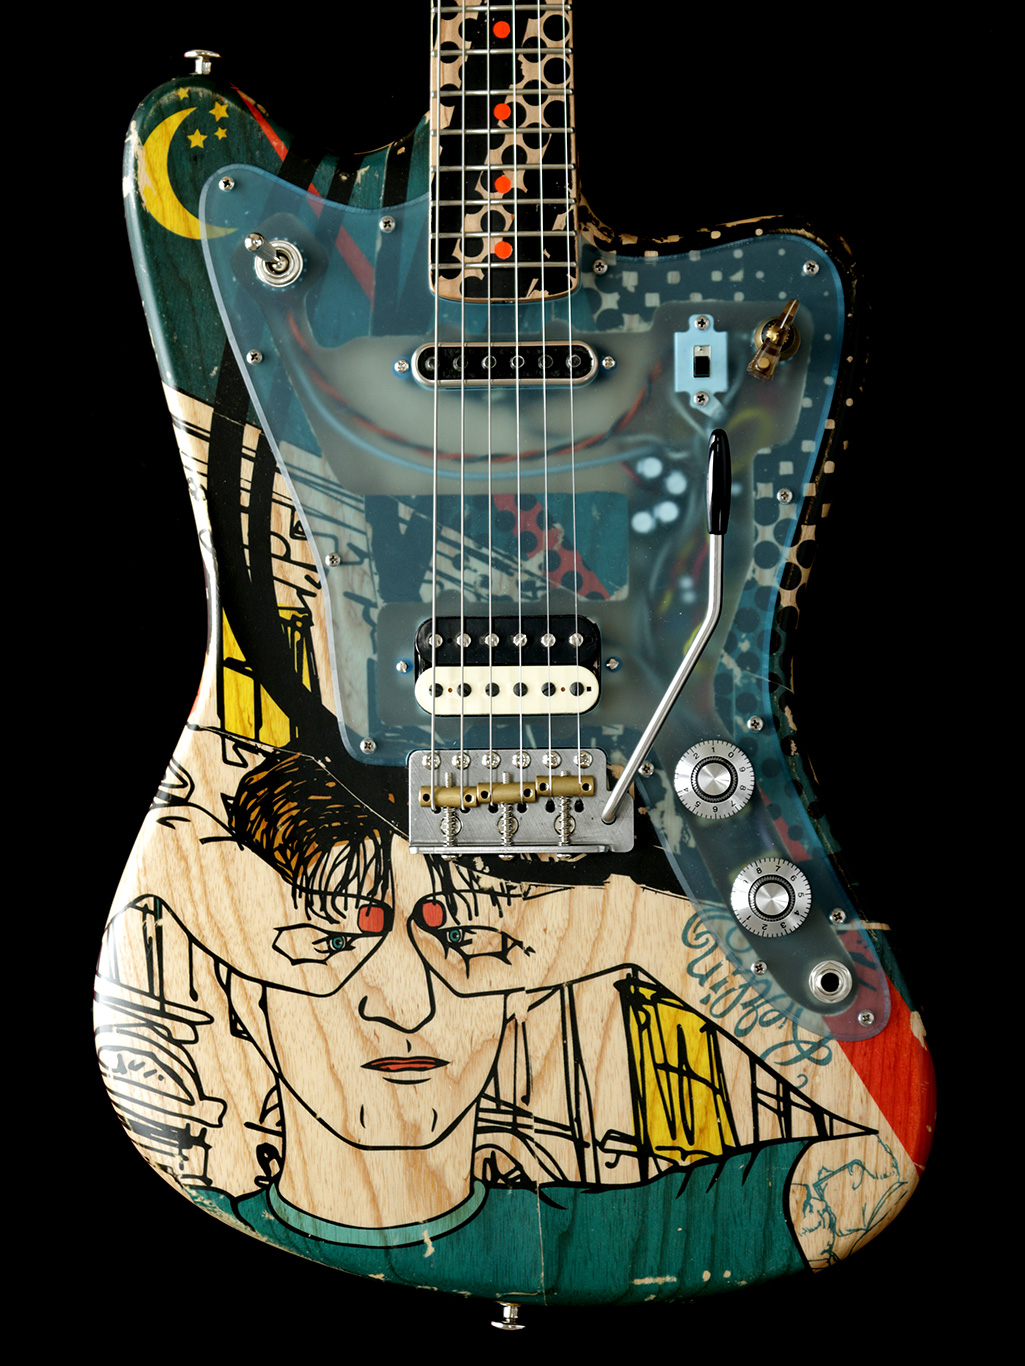 painted guitar Deimel Firestar Artist Edition, art by Kora Jünger